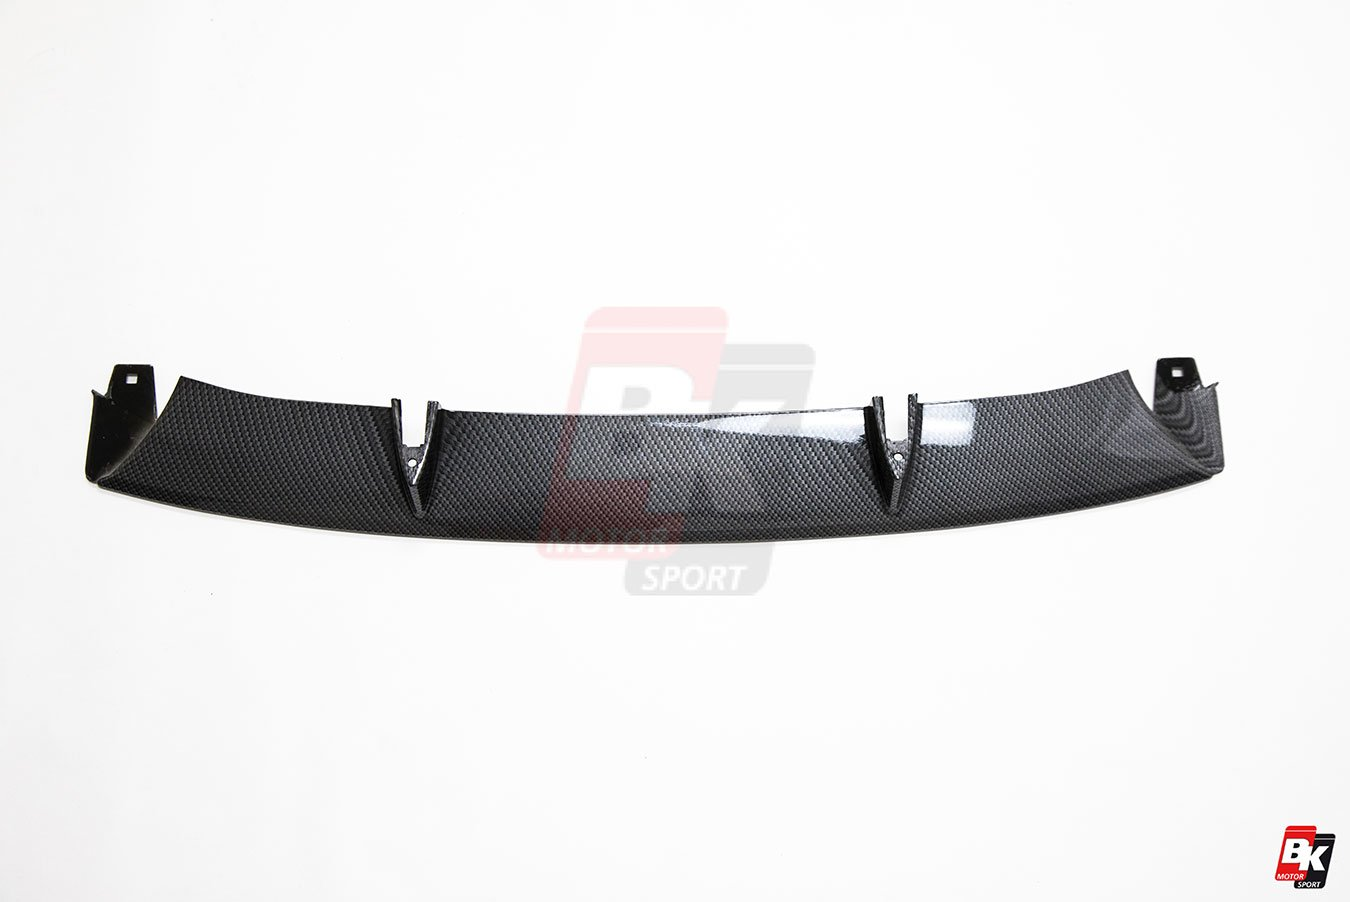 BKM Front Bumper Kit with Front Grille and Rear Diffuser (RS Style - Carbon), fits Audi A7 C7.0